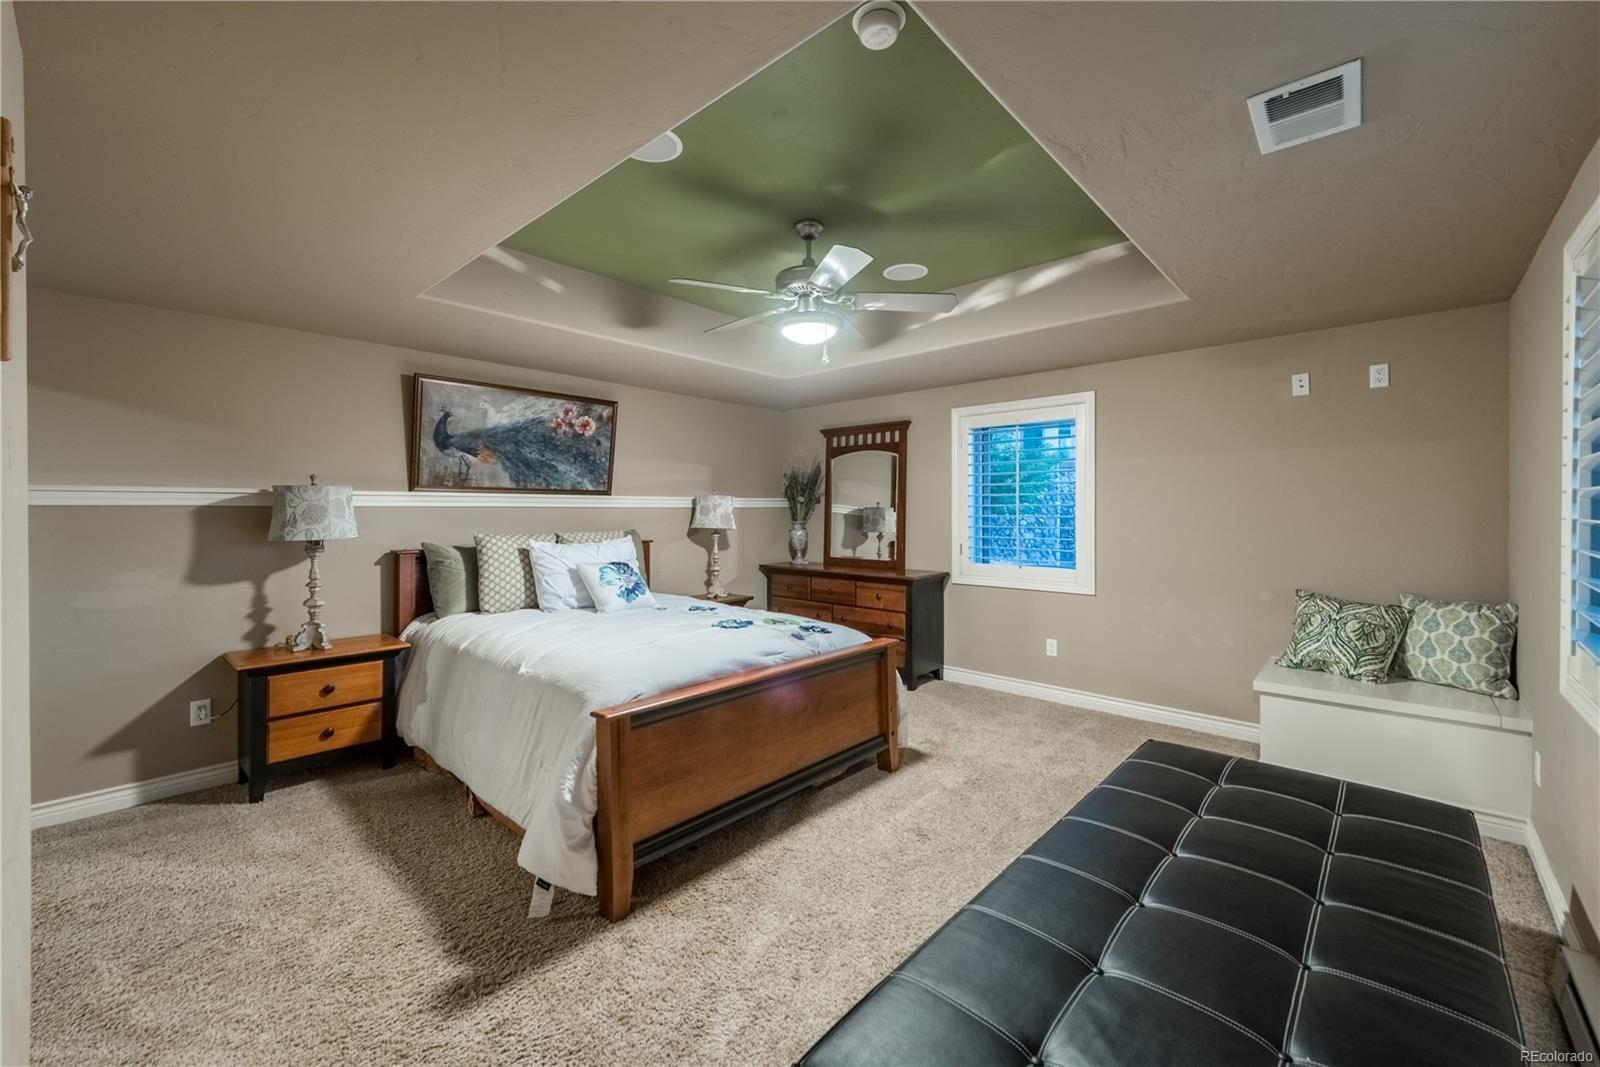 Basement bedroom with private bath